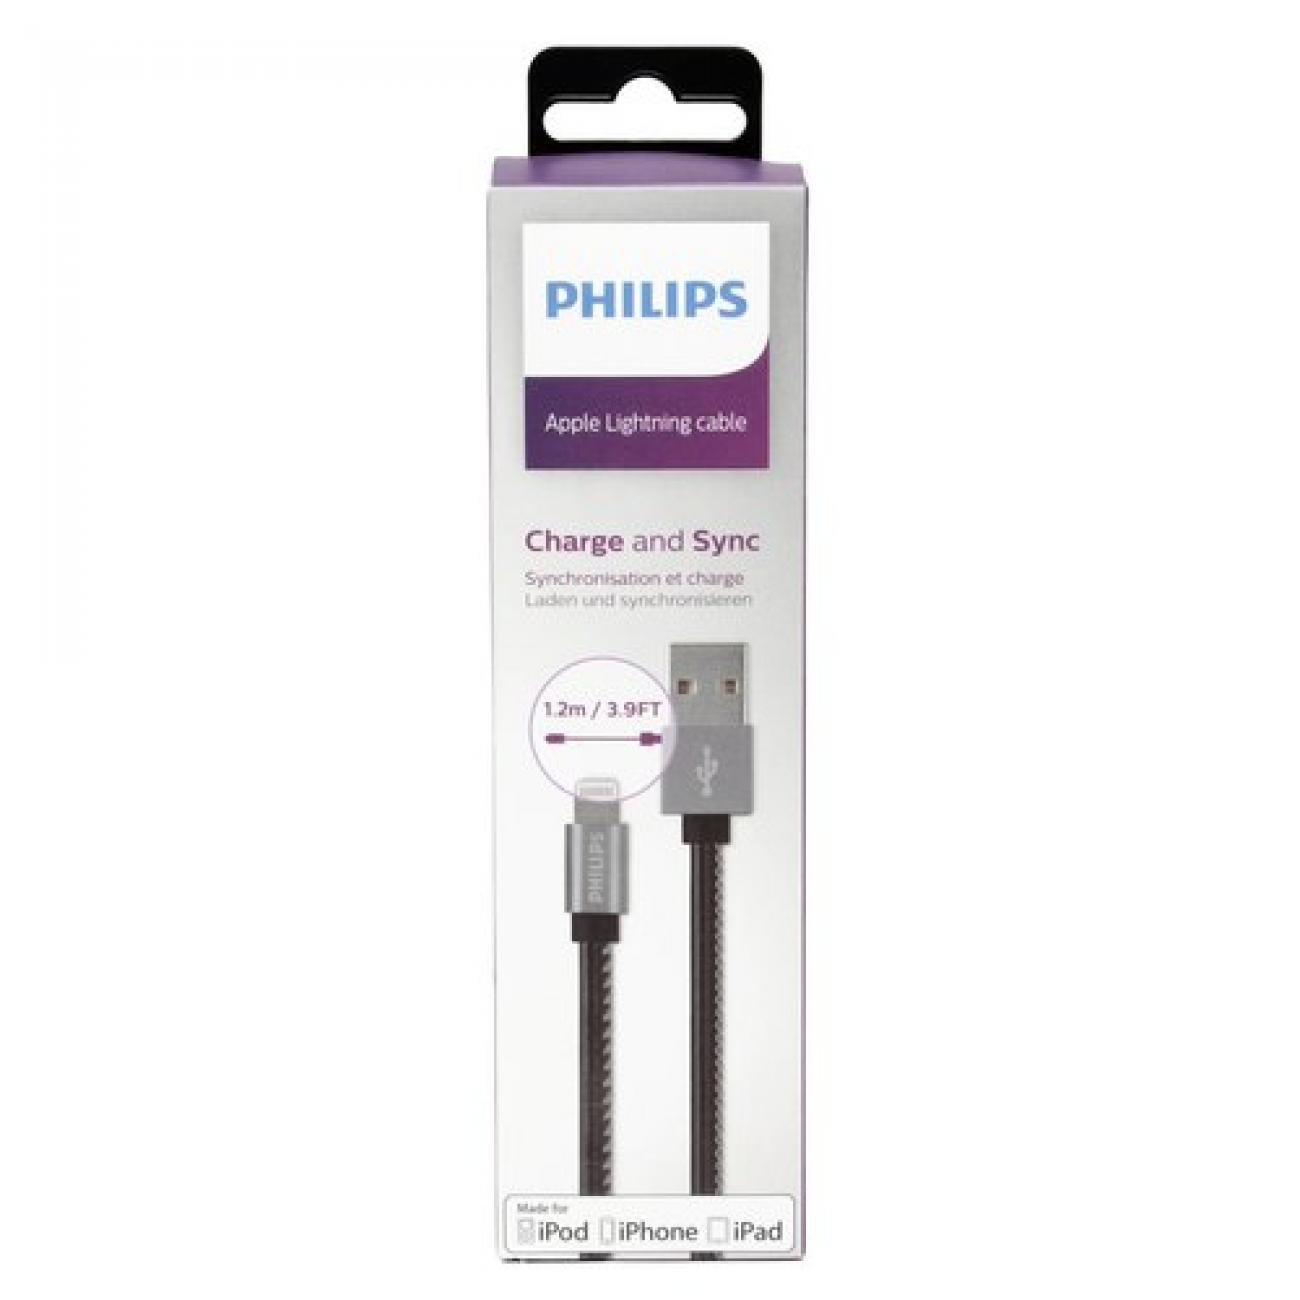 philips-data-cables-500x500